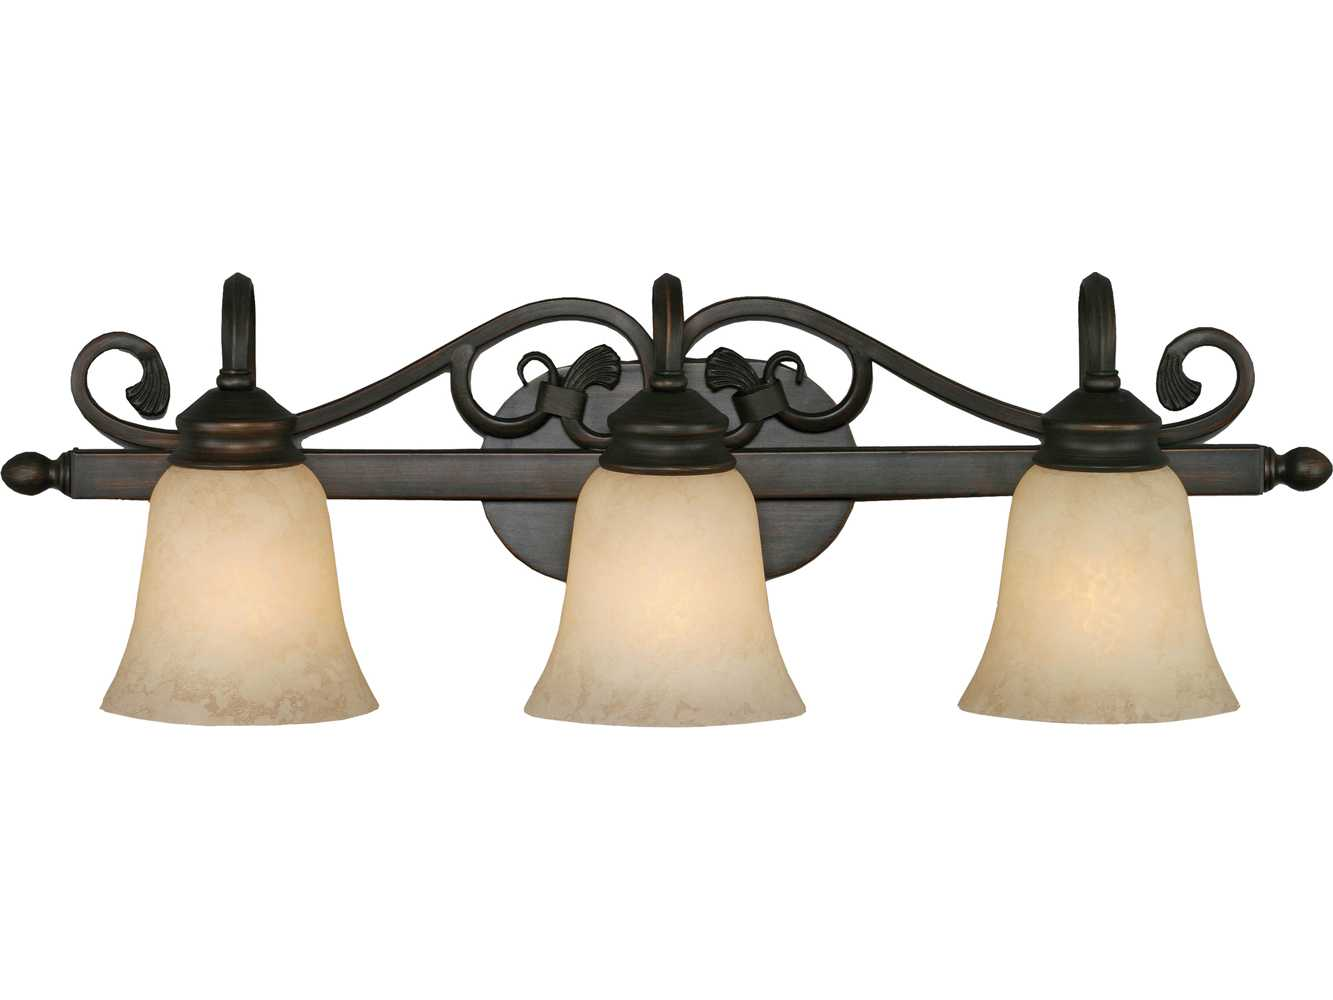 Golden Lighting Belle Meade Rubbed Bronze Three-Light Vanity Light with Tea Stone Glass GO40743RBZ